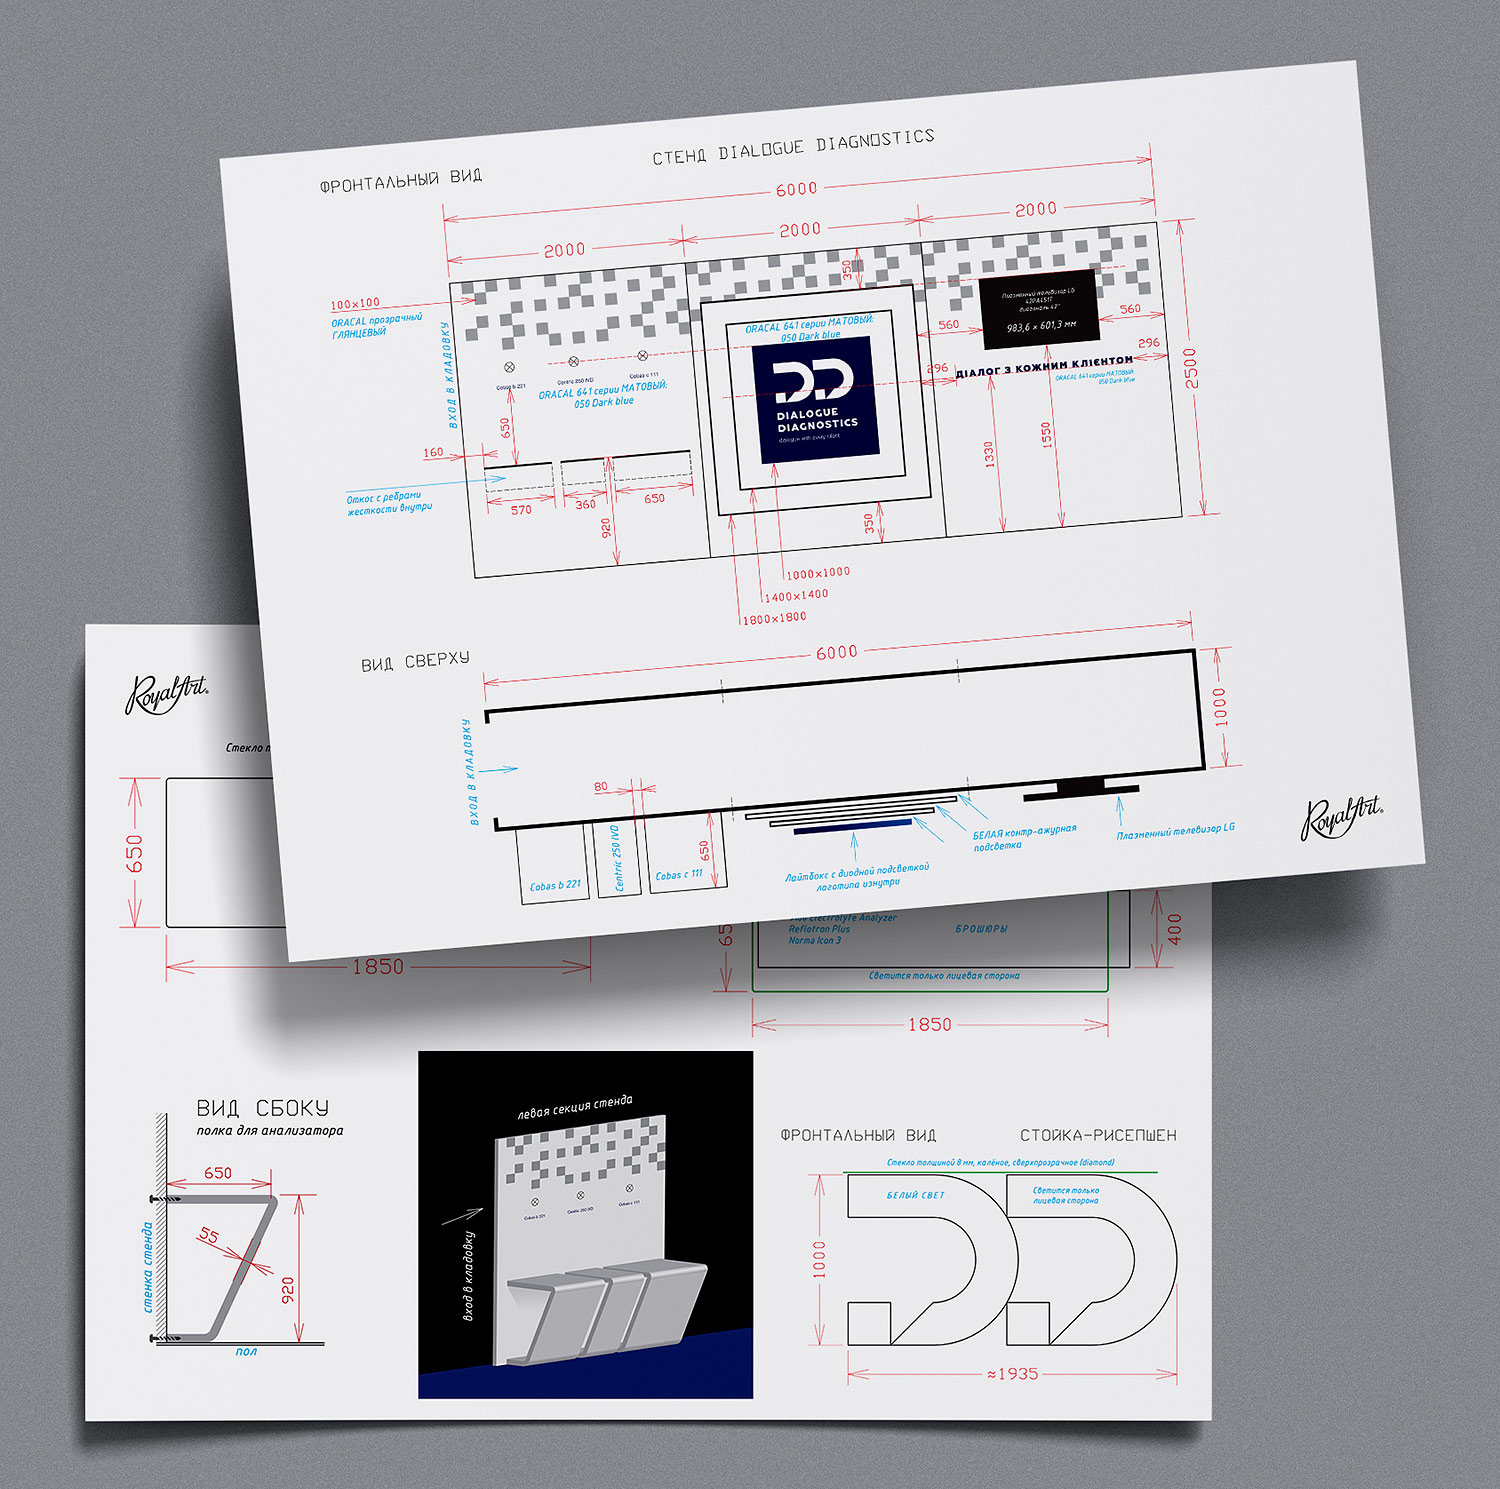 Blueprint of the exhibition stand for a medical exhibition. Dialogue Diagnostics.